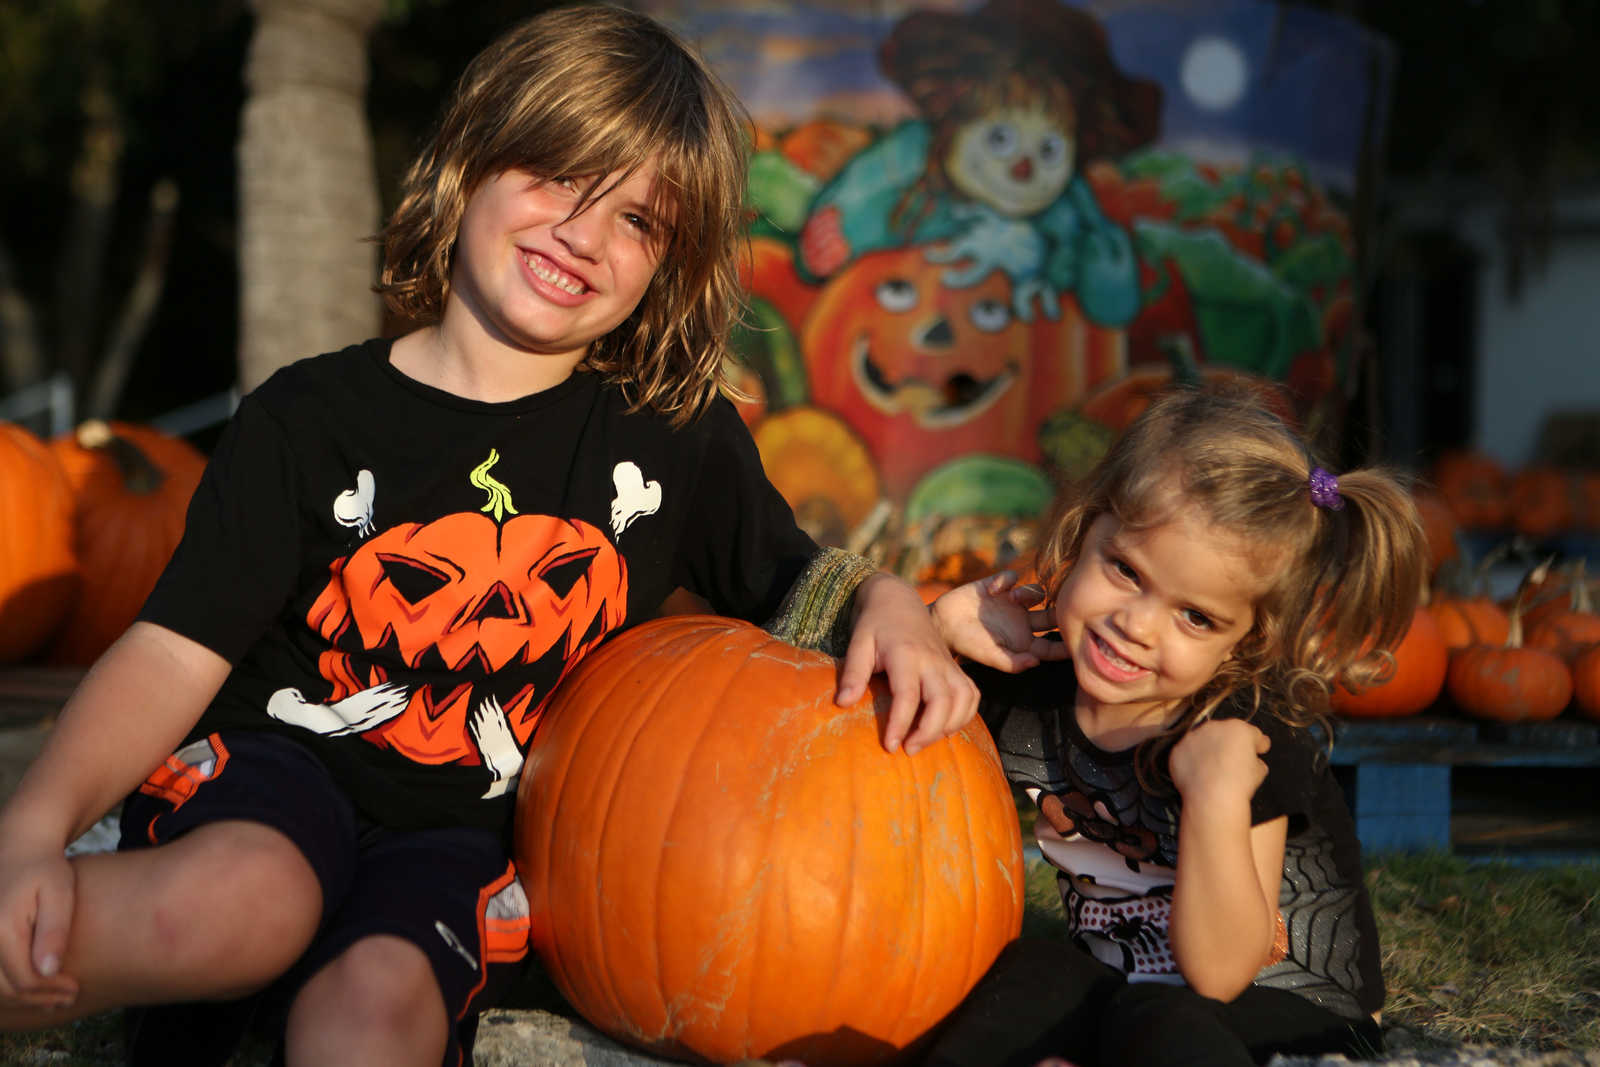 A boy and a girl posing by a large pumpkin